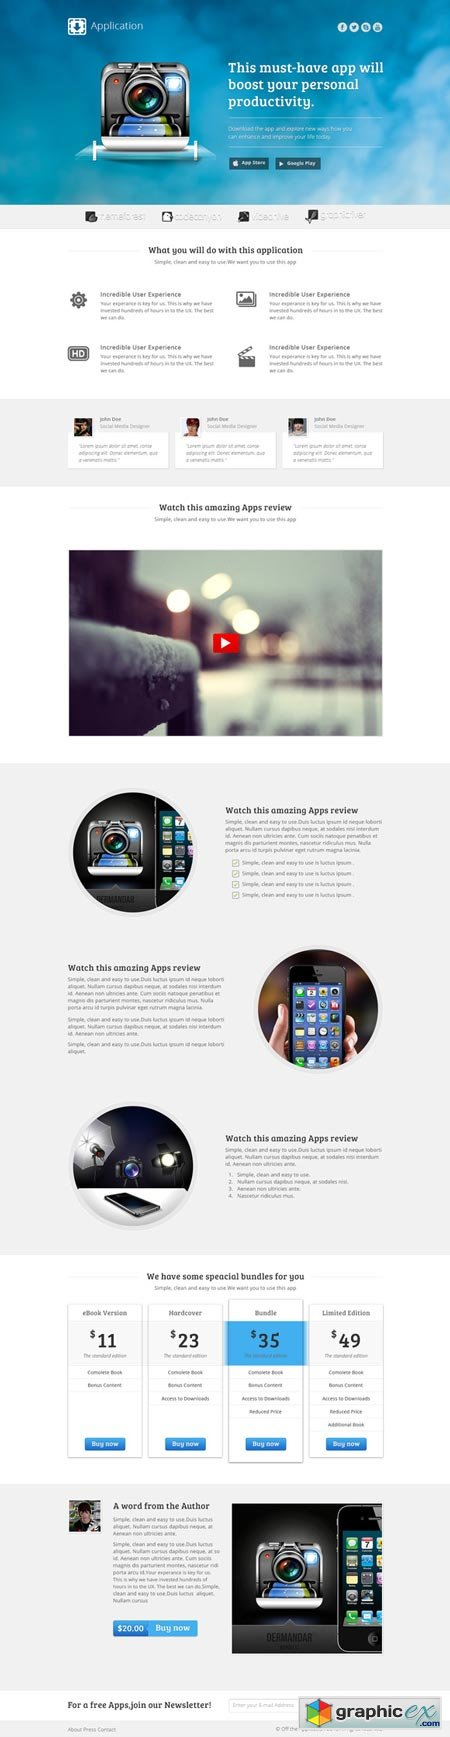 Creativemarket Application - Landing page for apps 4400